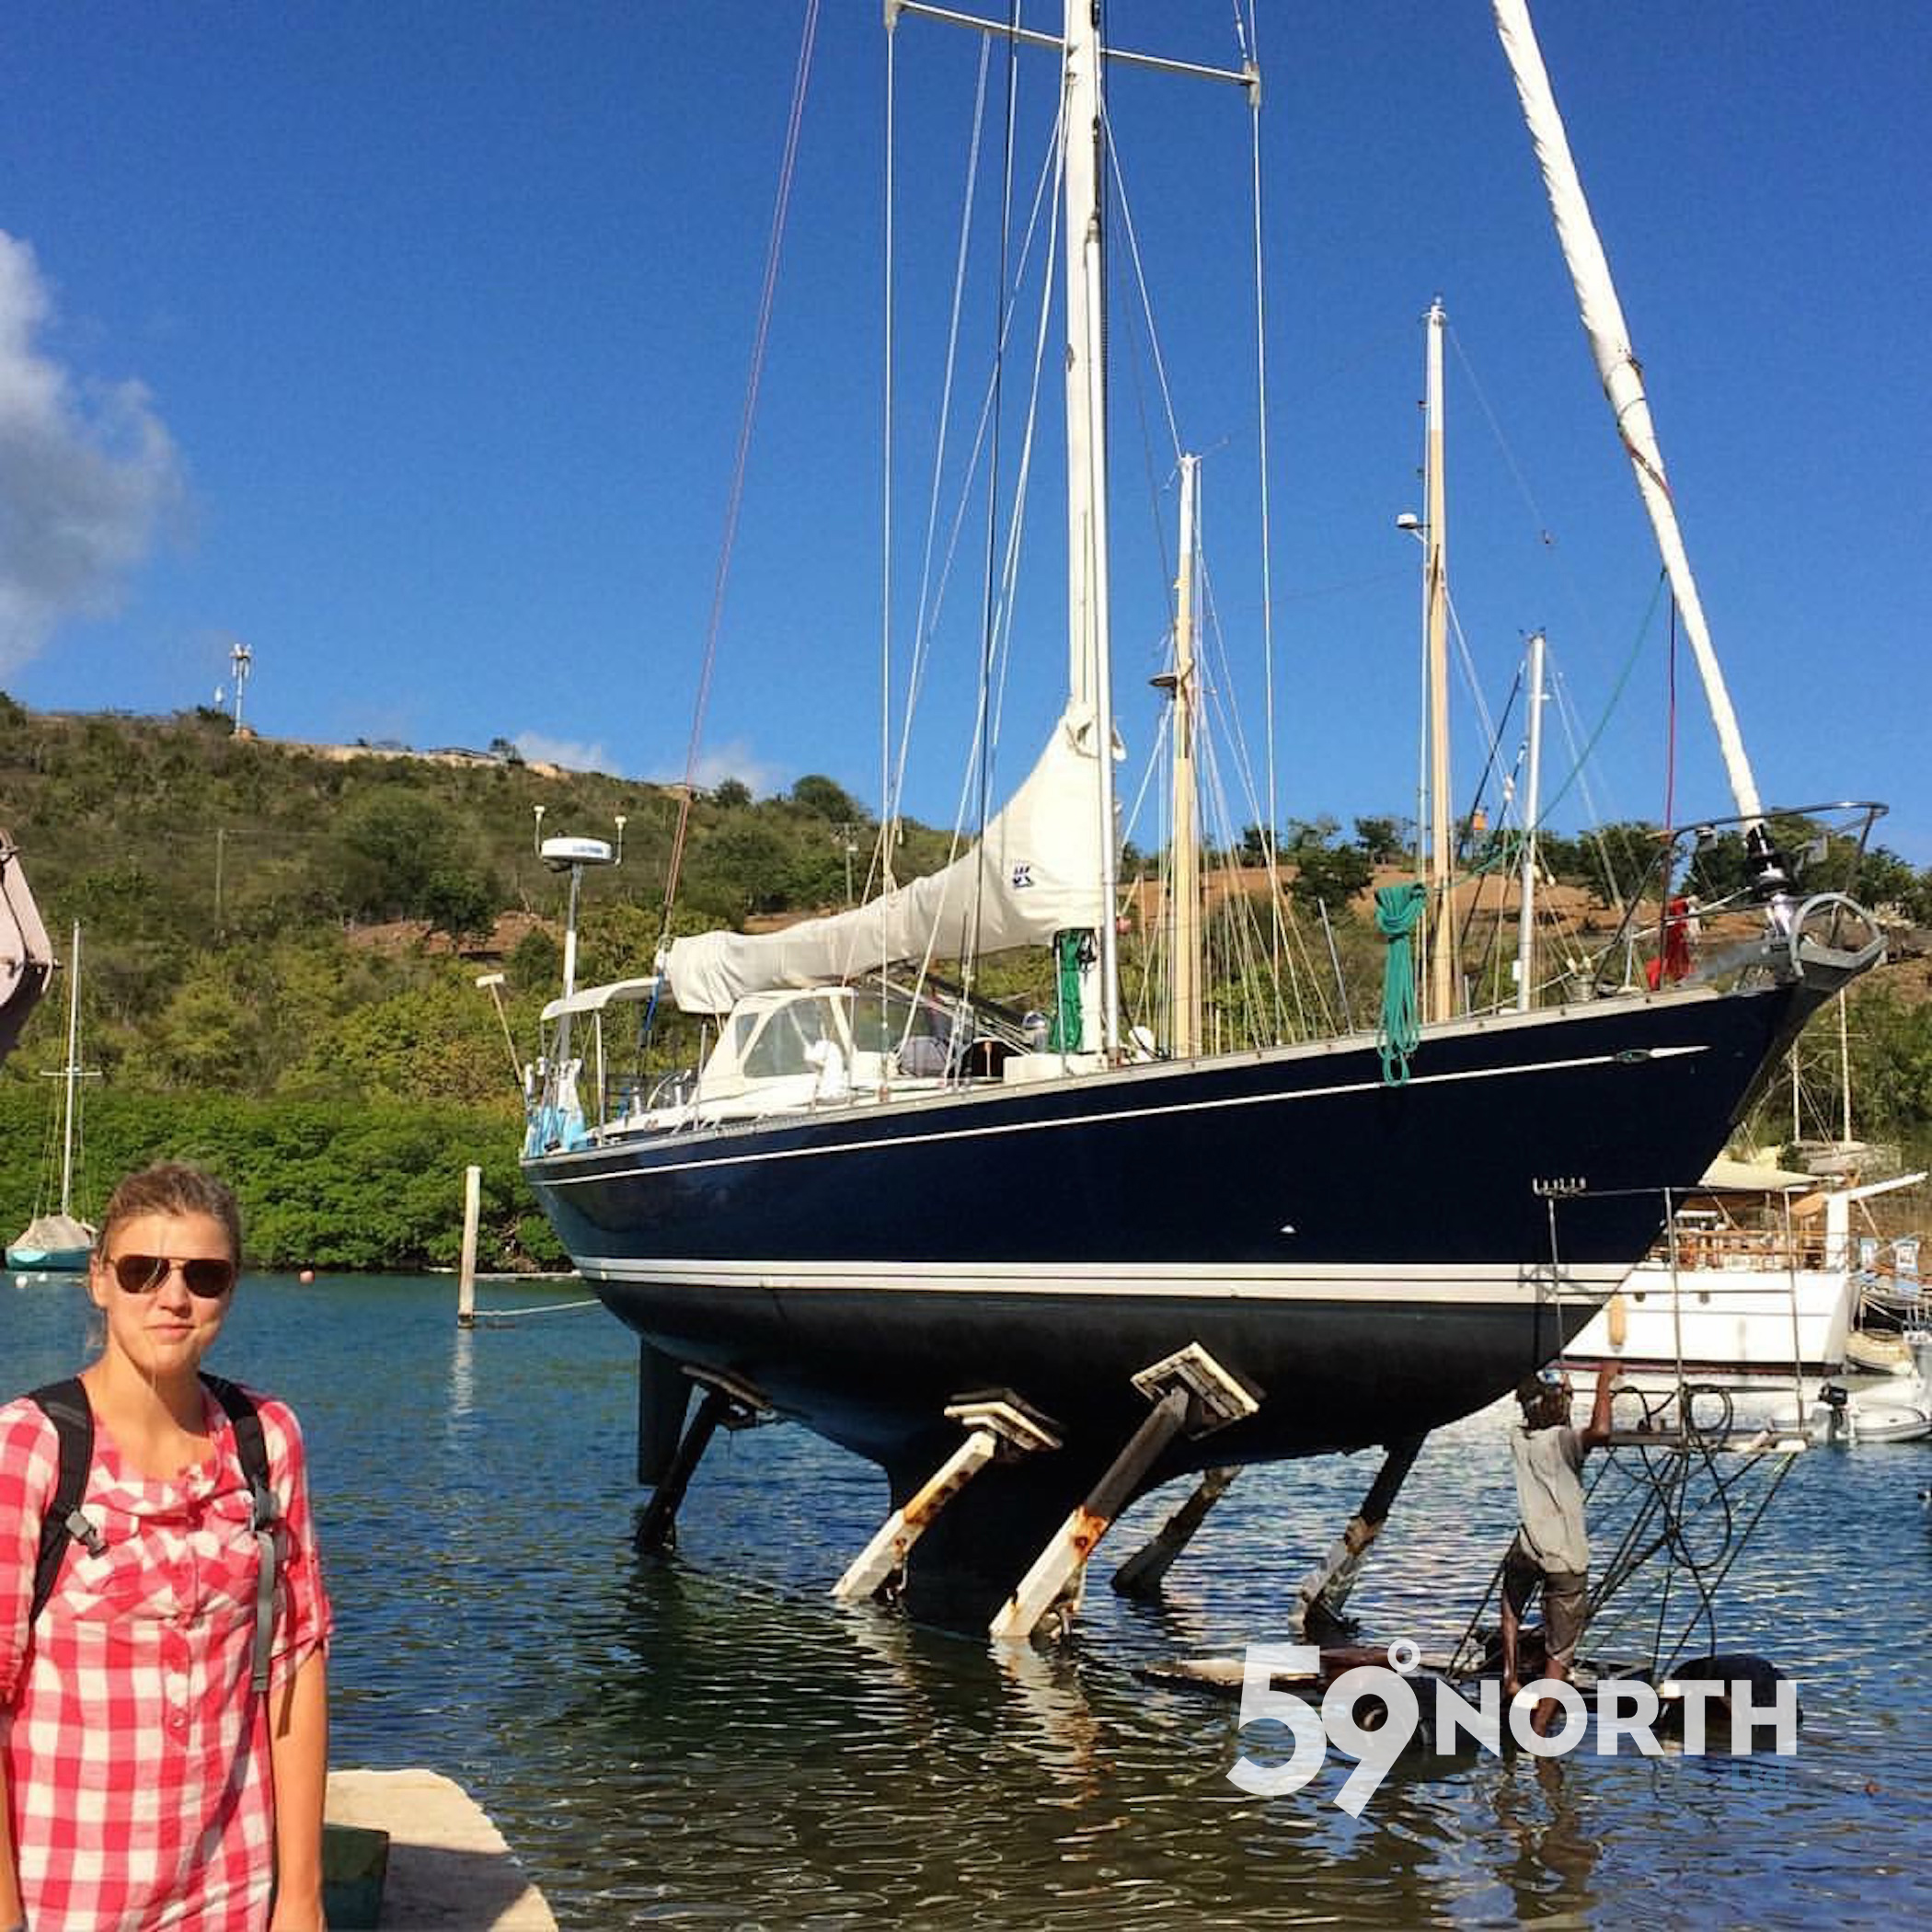 Isbjorn getting hauled at Antigua Slipway, hauling the boat out in new places always makes me nervous! March 2016